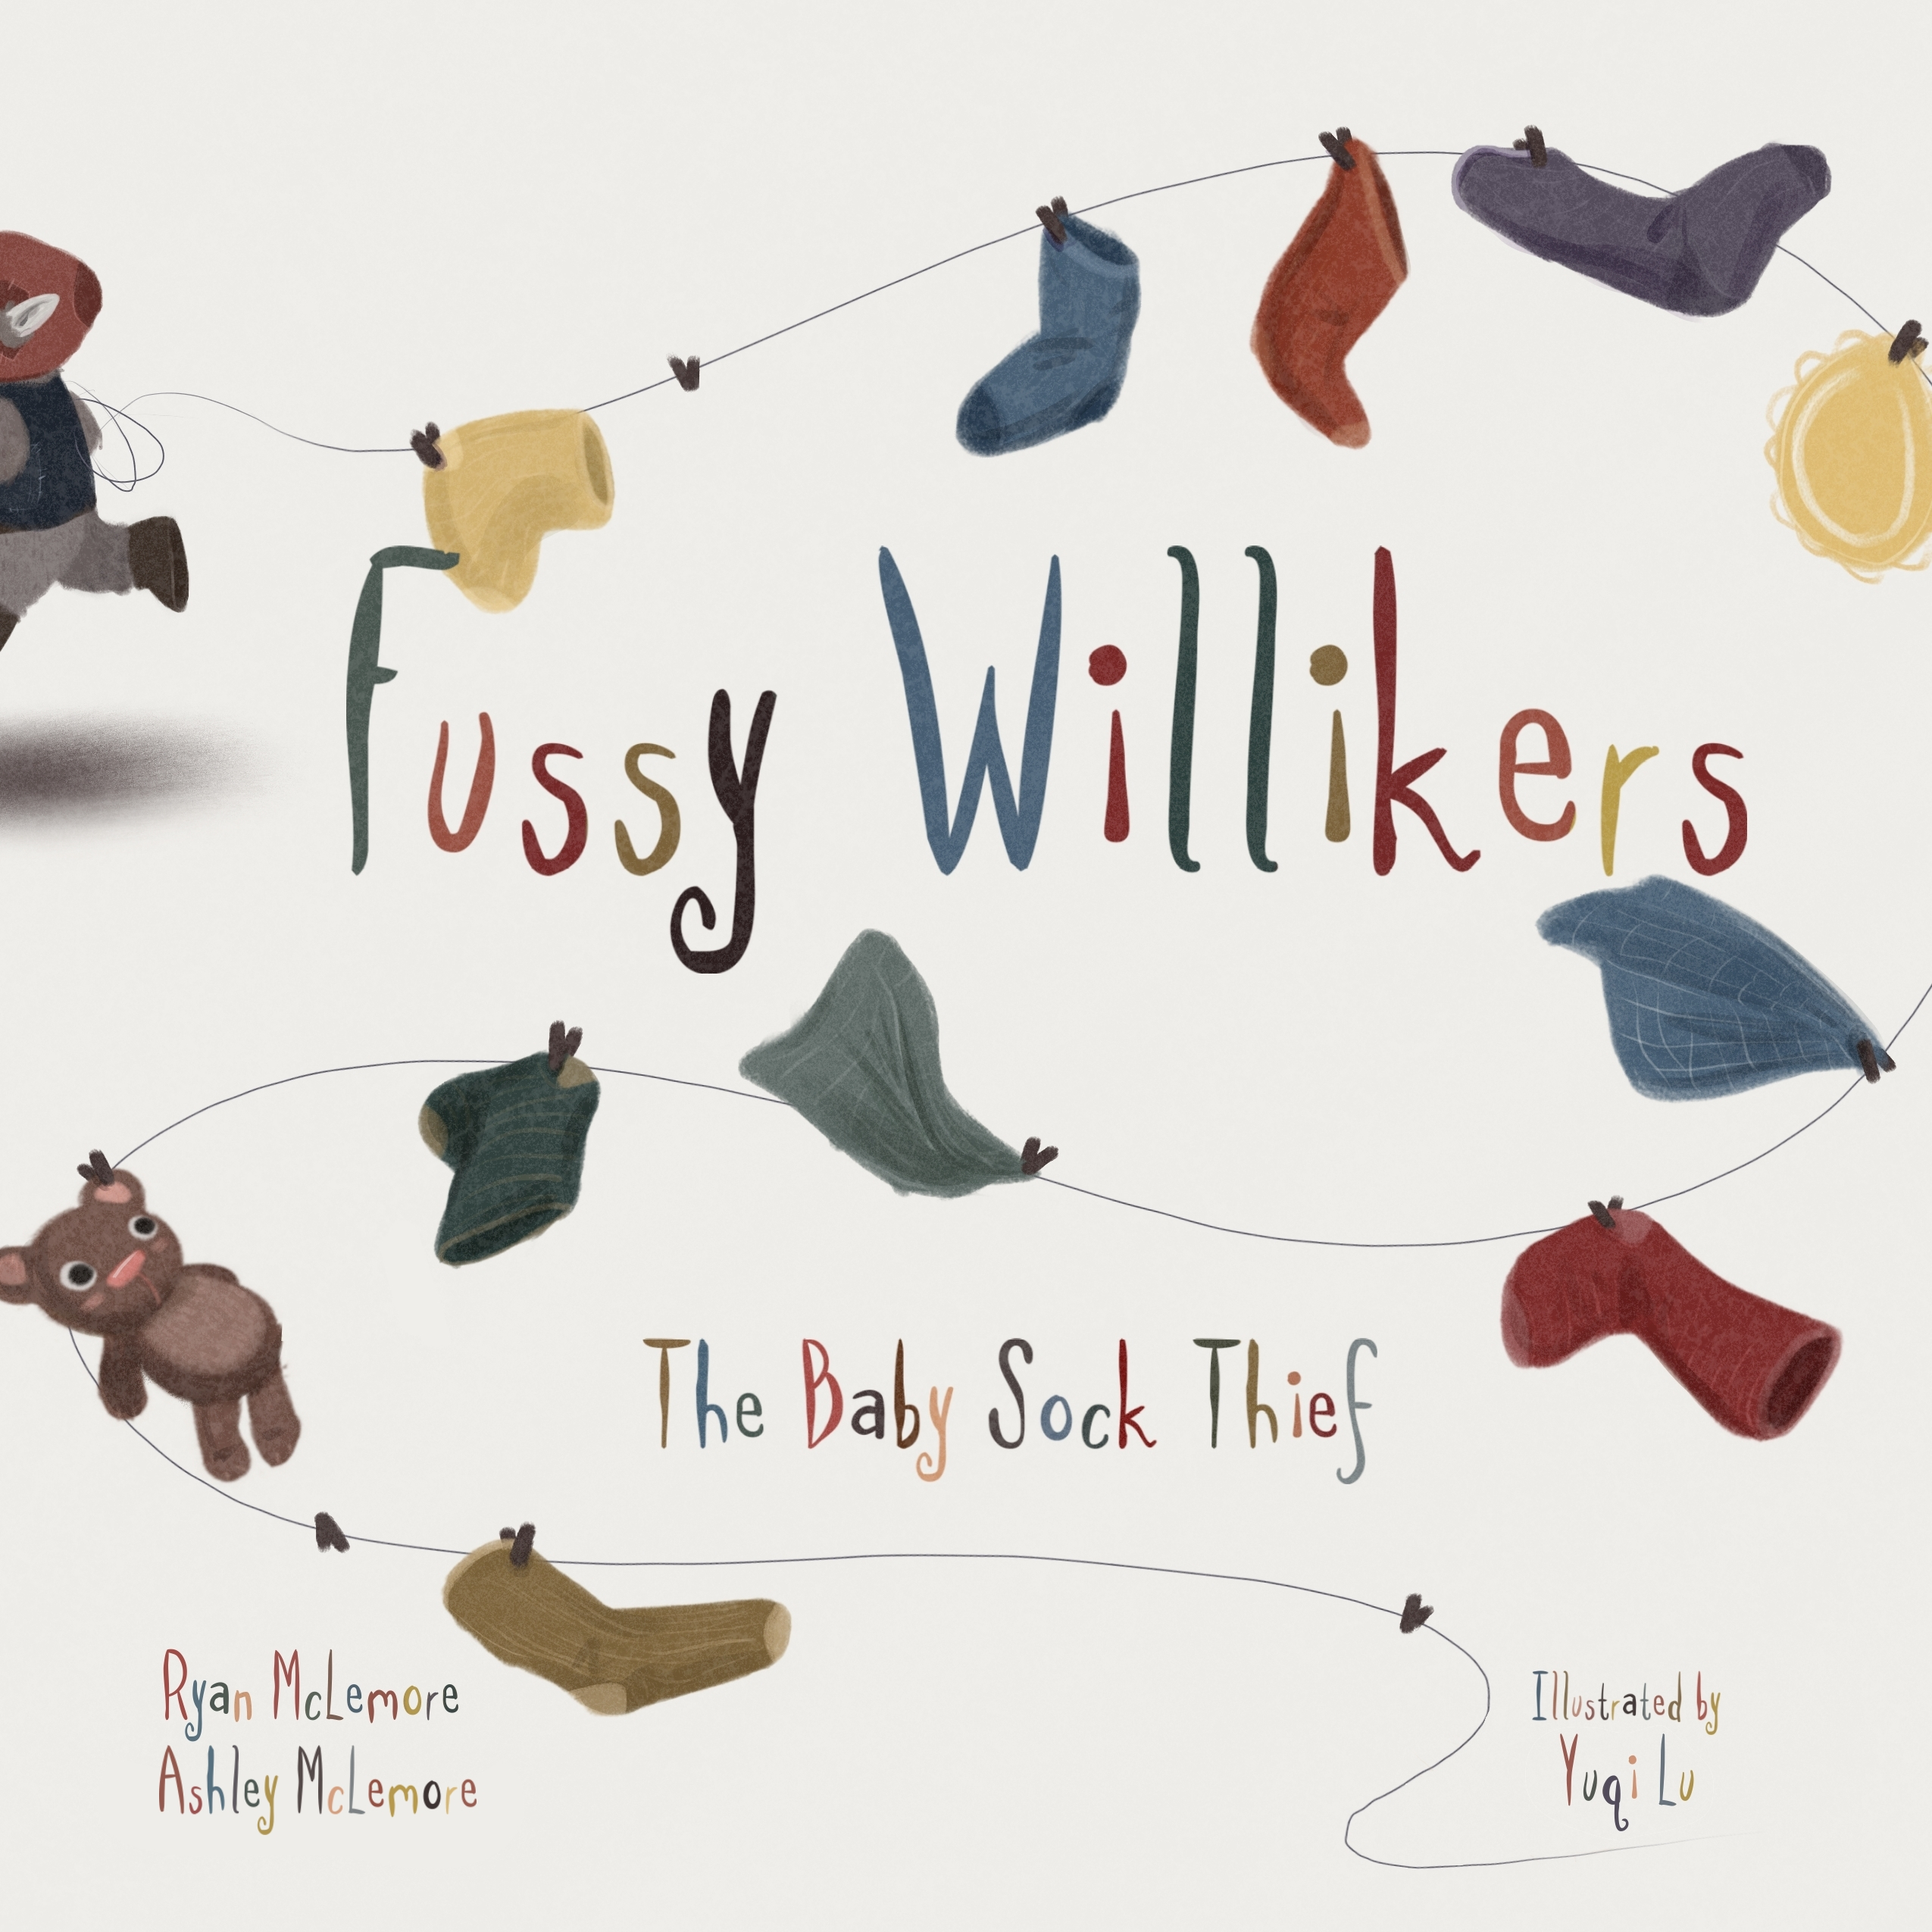 Parents Will Love This Story About The Baby Sock Thief!